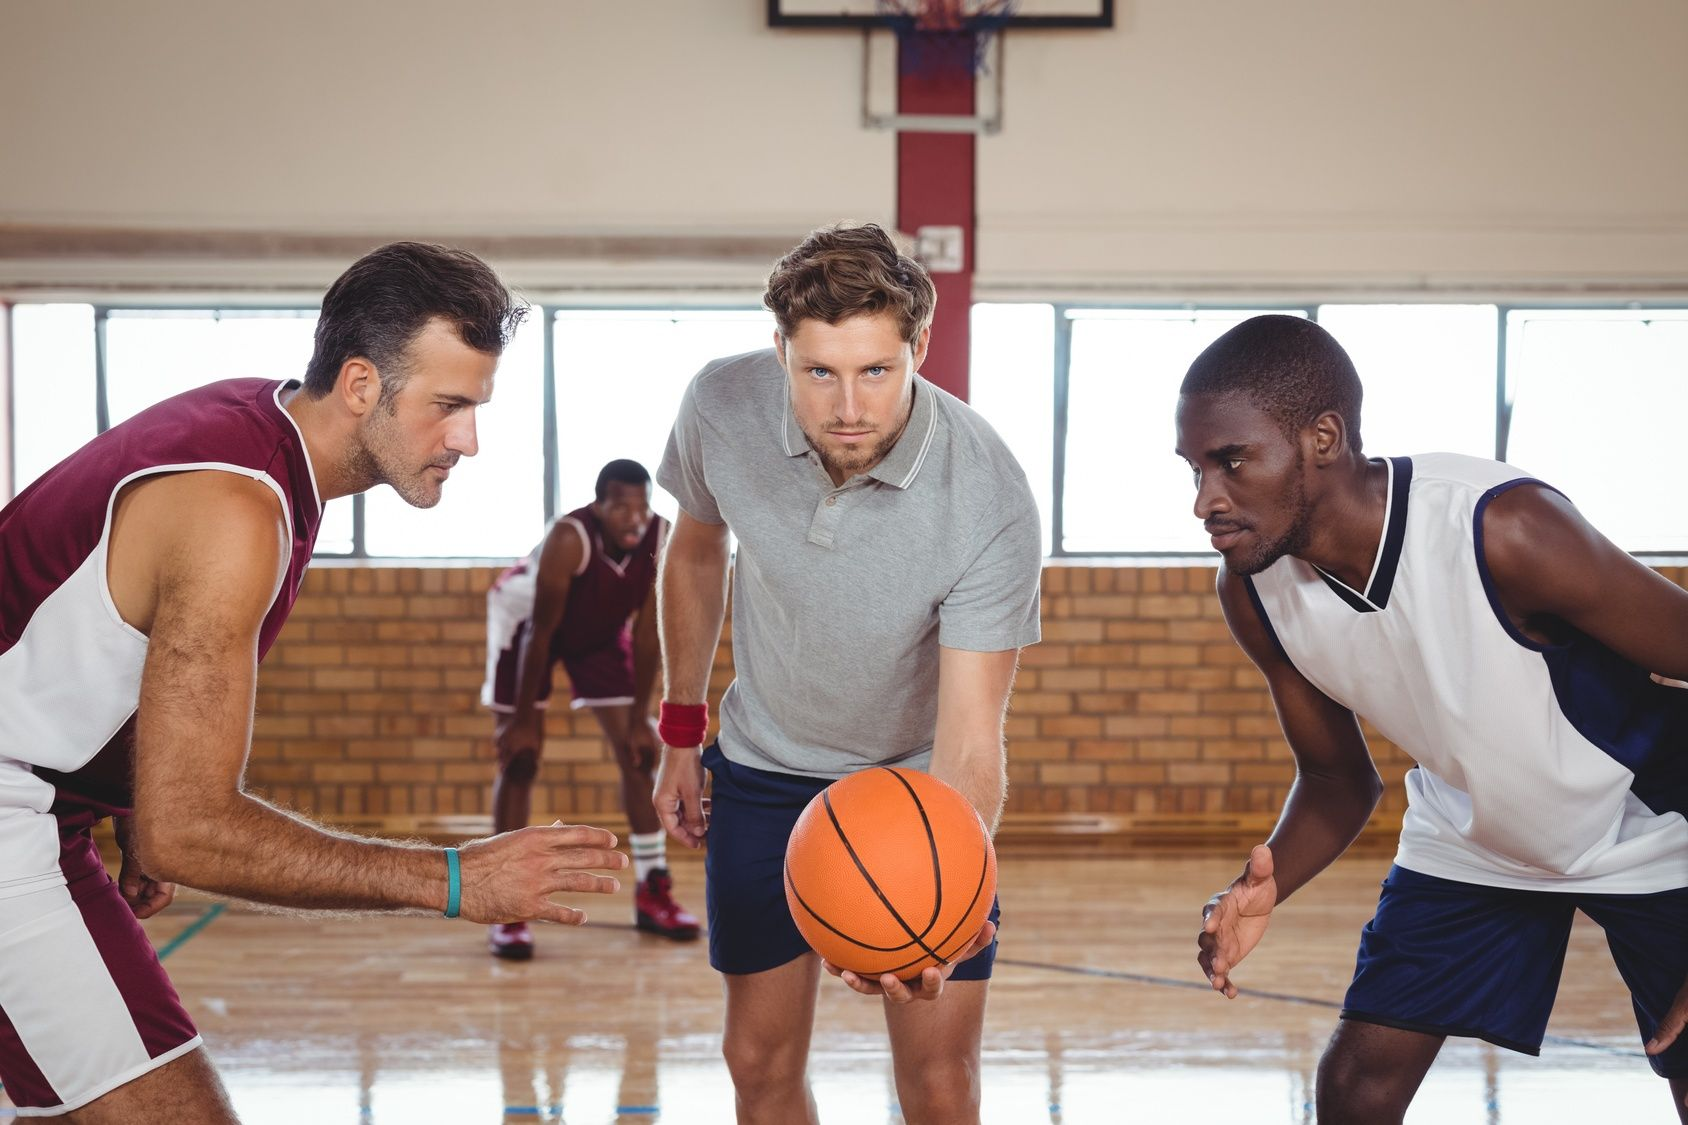 How to referee a basketball game the key points